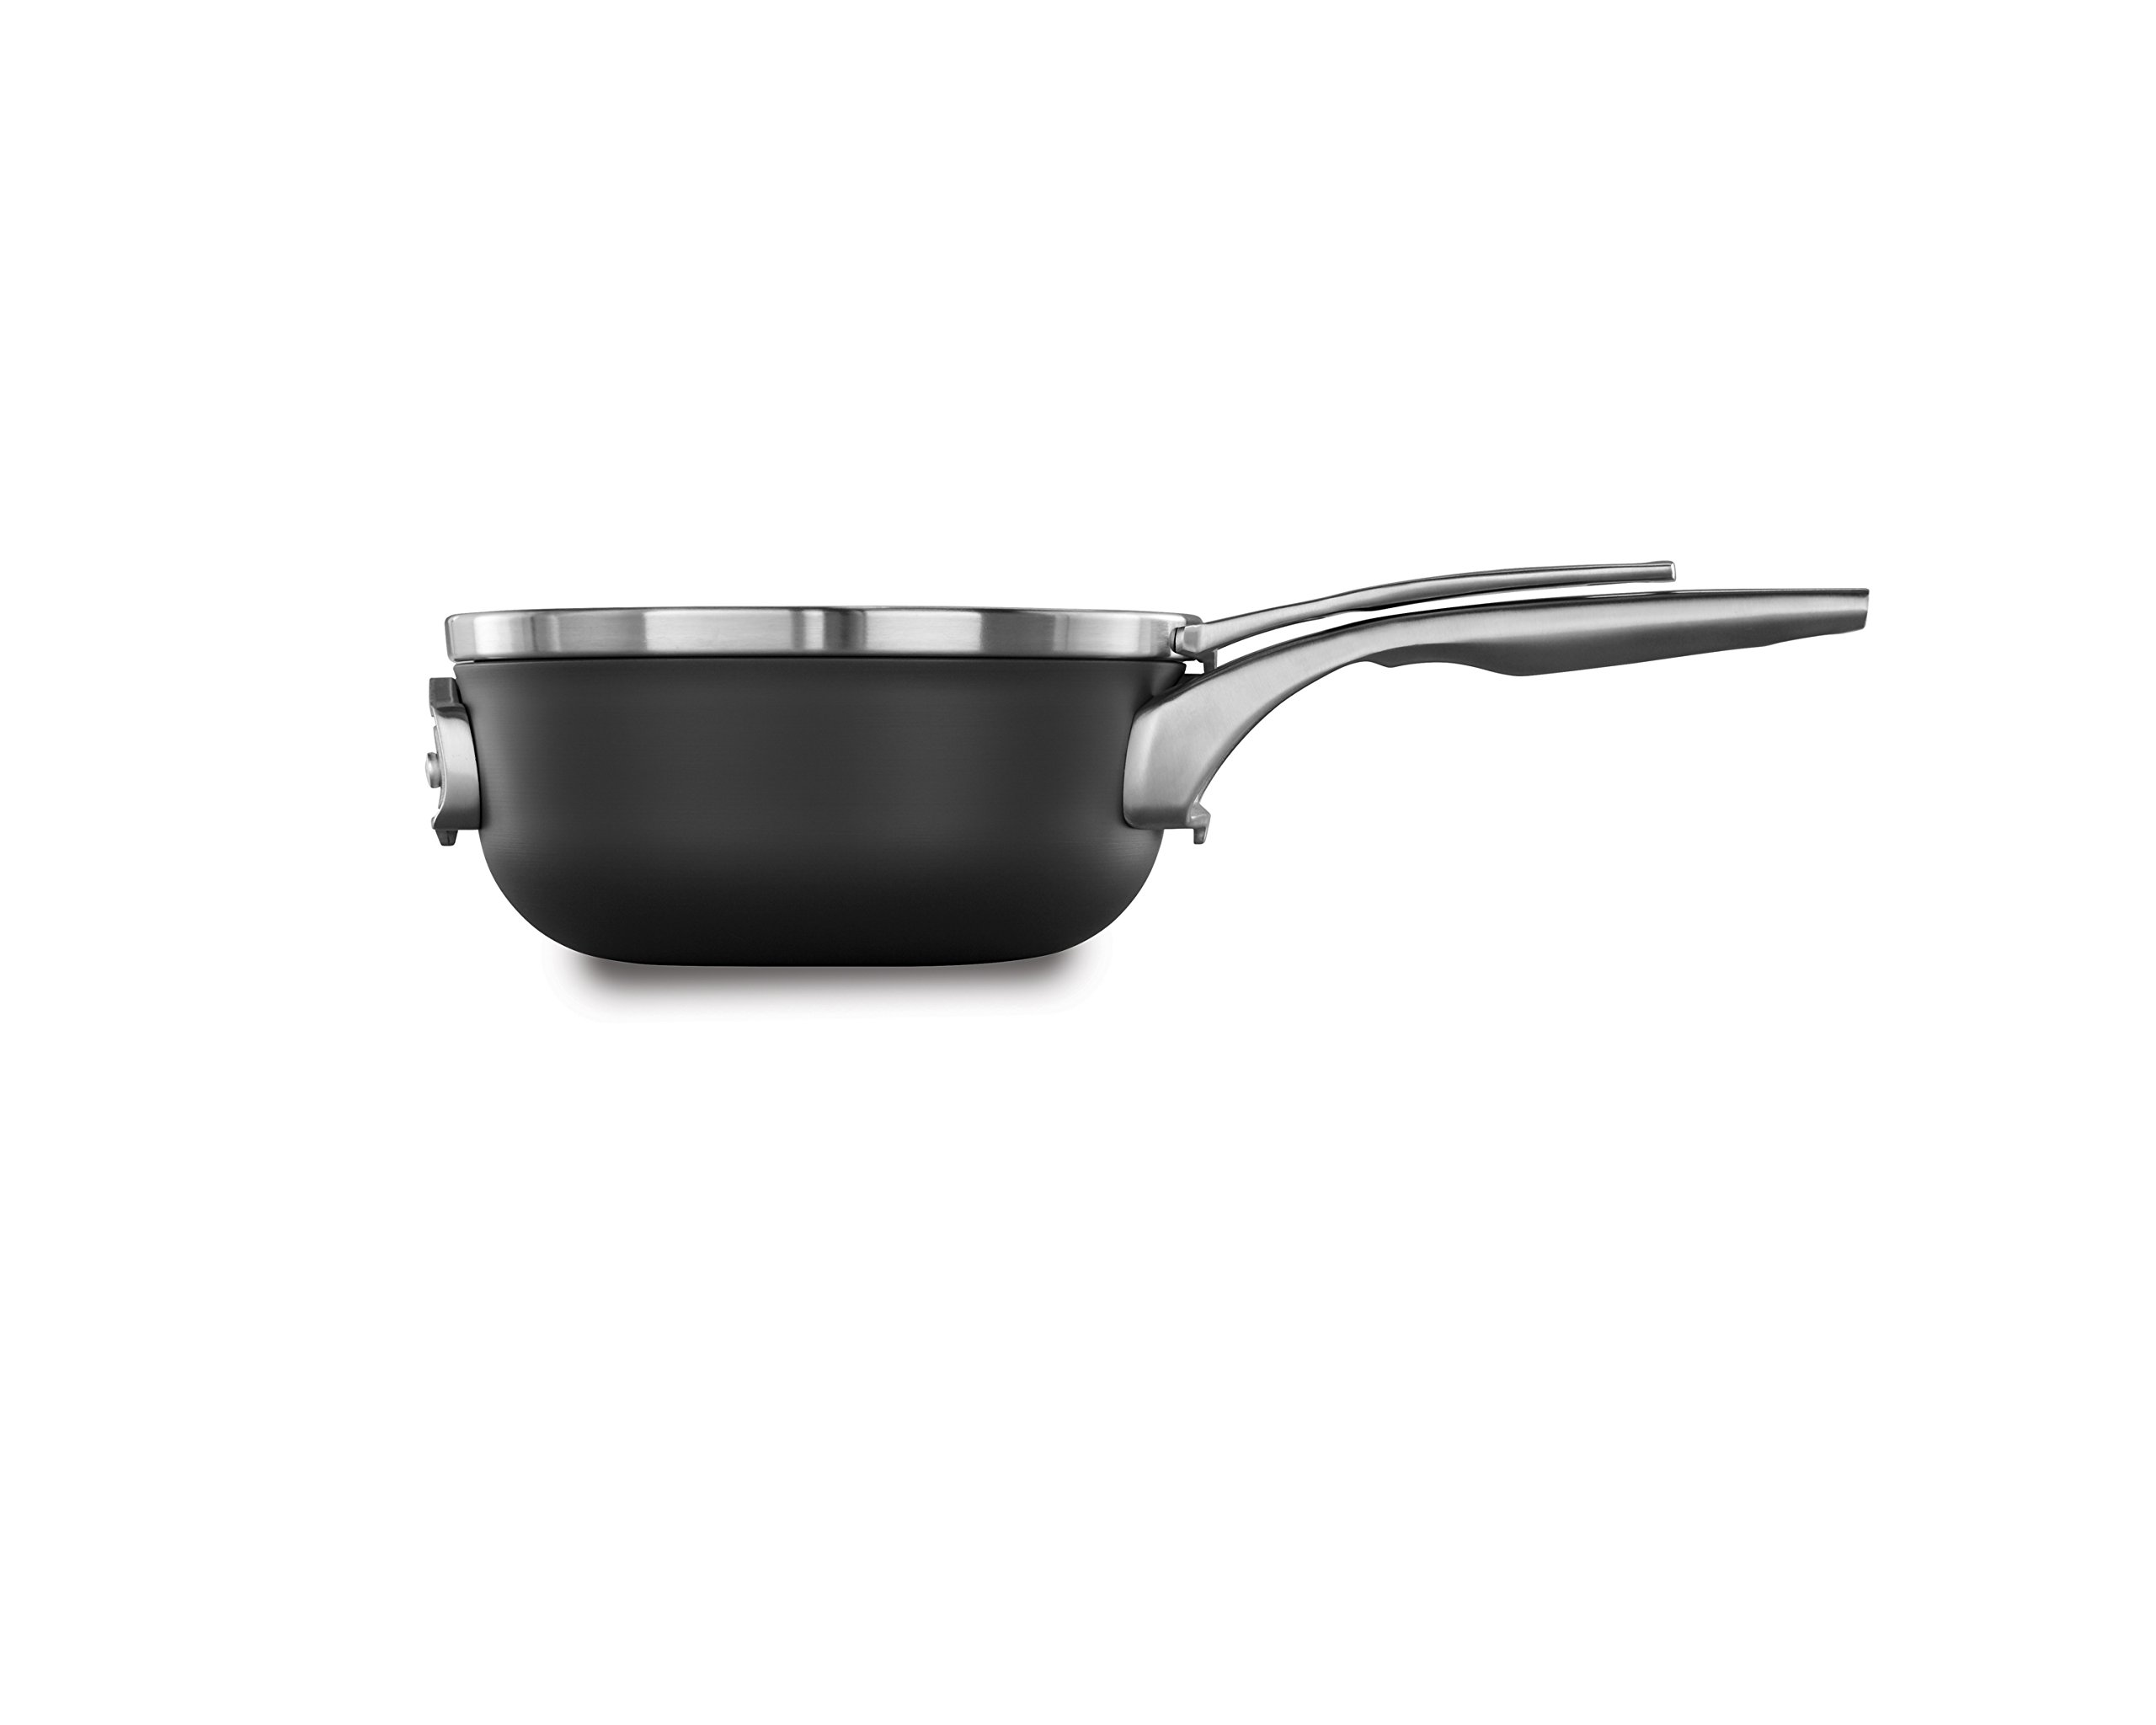 Calphalon Premier Space Saving Nonstick 2.5qt Chef's Pan with Cover